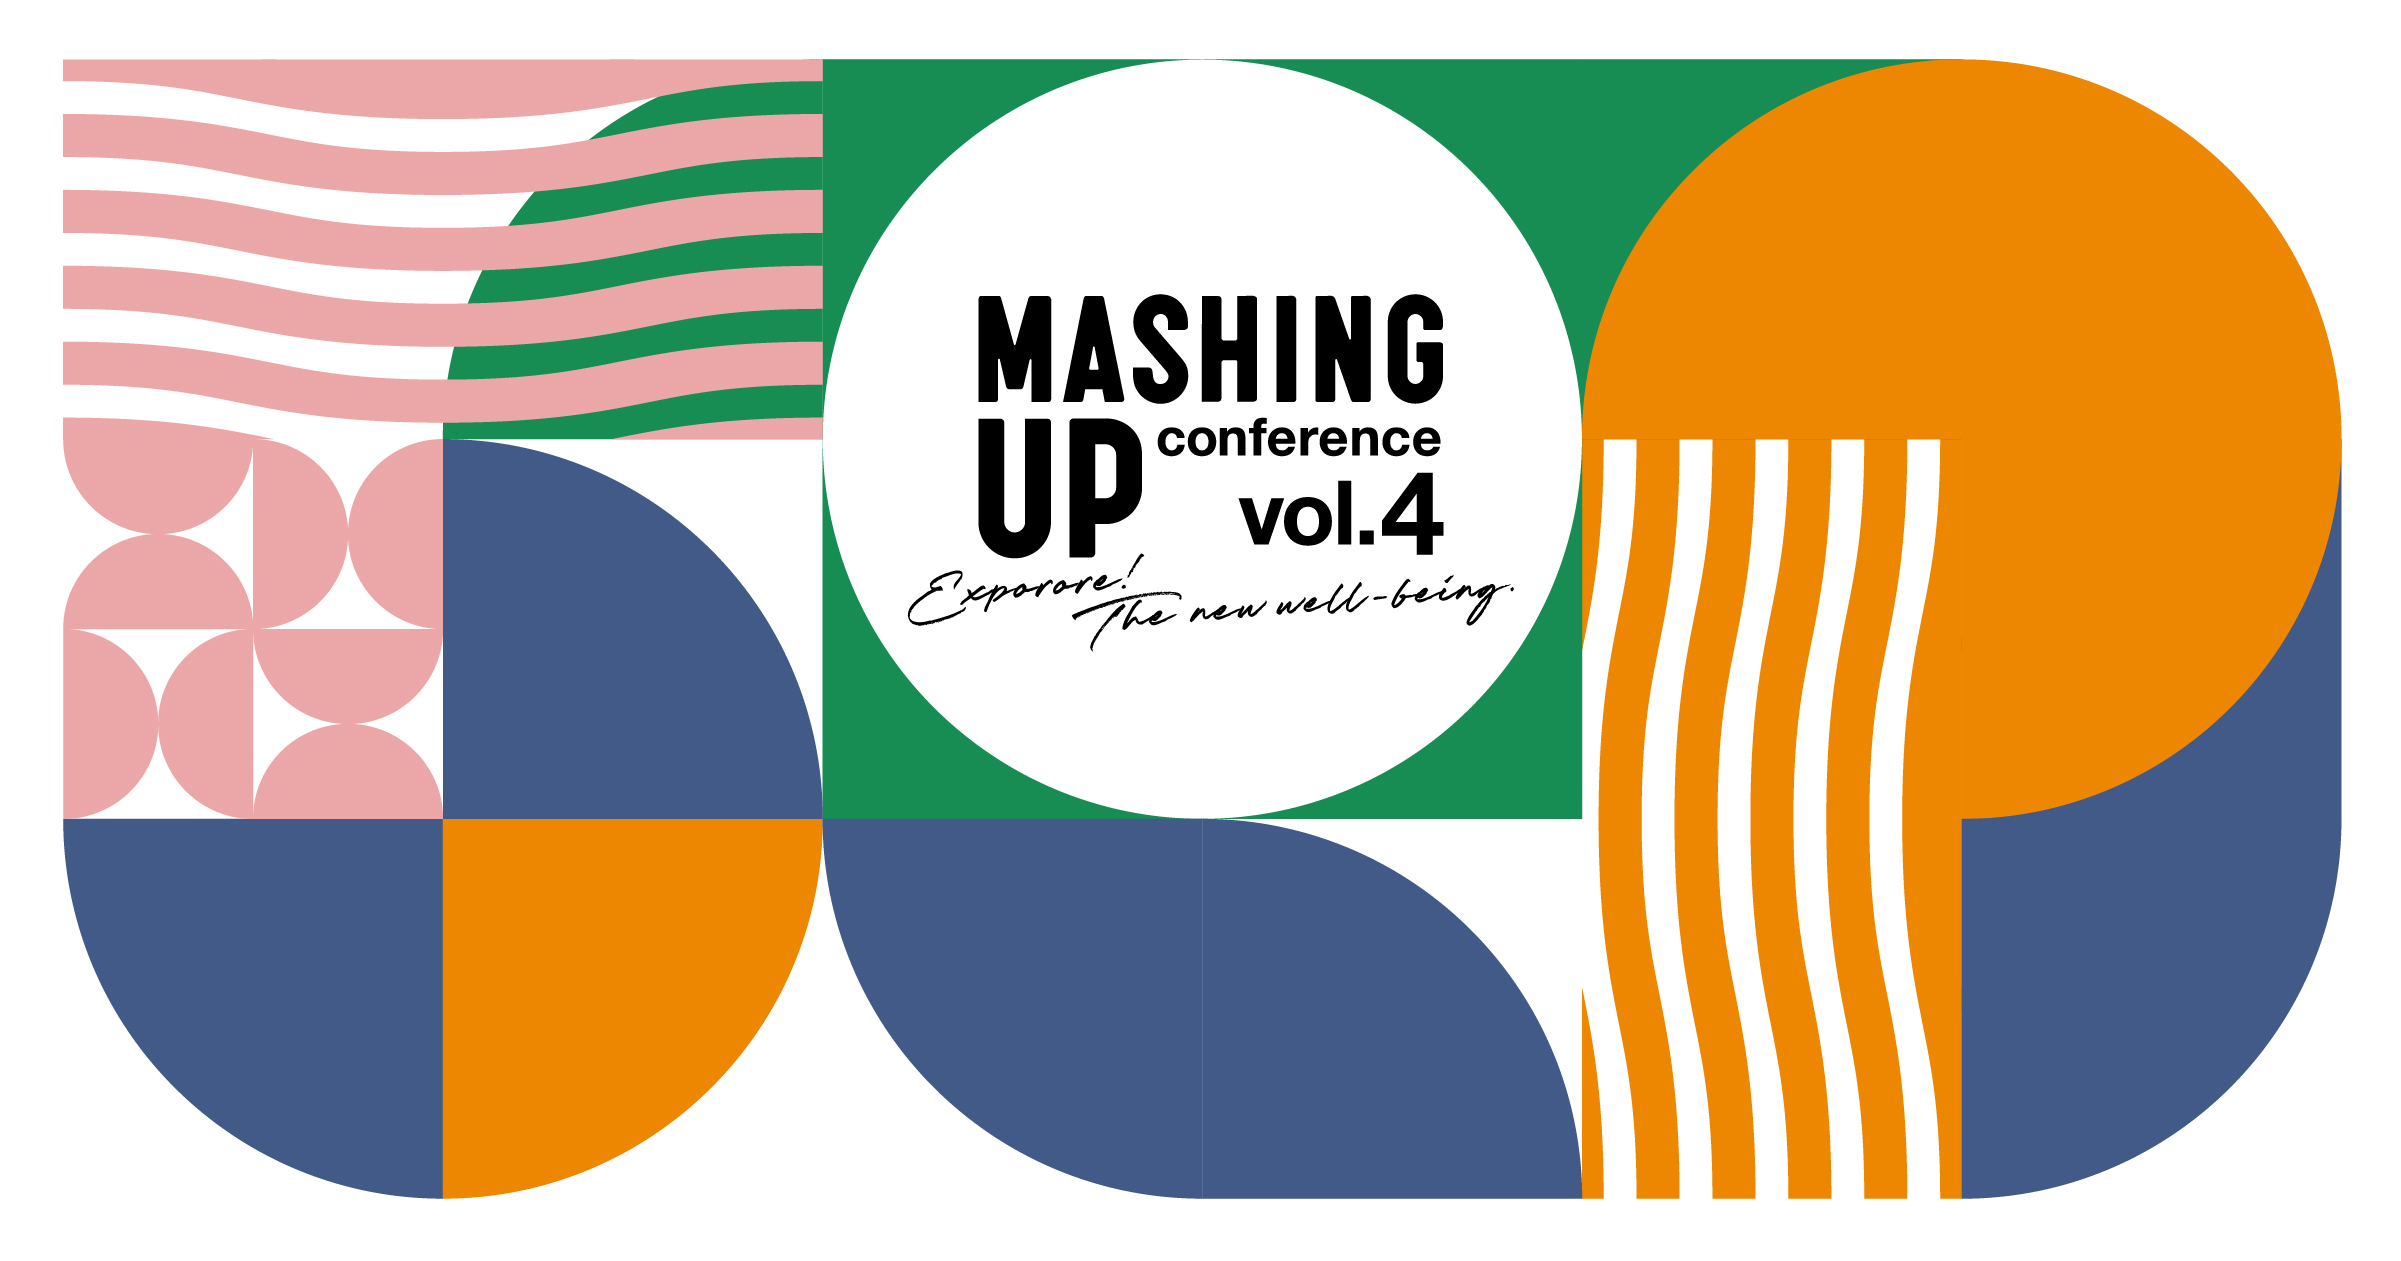 Conference:MASHING UP vol.4